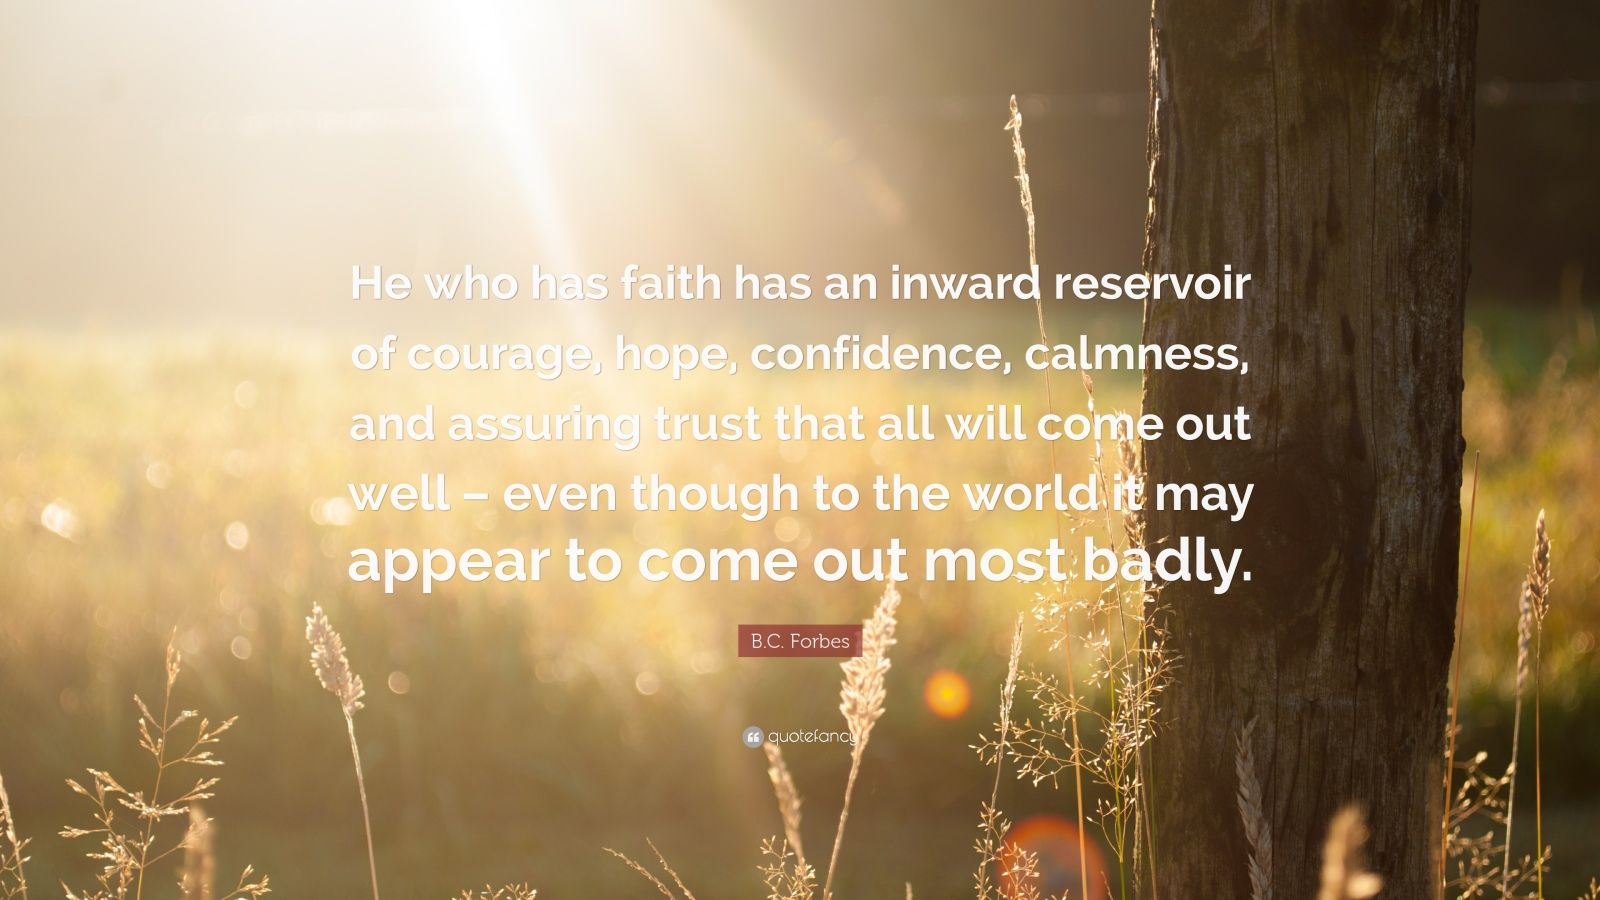 """B.C. Forbes Quote: """"He who has faith has an inward reservoir of courage, hope, confidence, calmness, and assuring trust that all will come out well – even though to the world it may appear to come out most badly."""""""